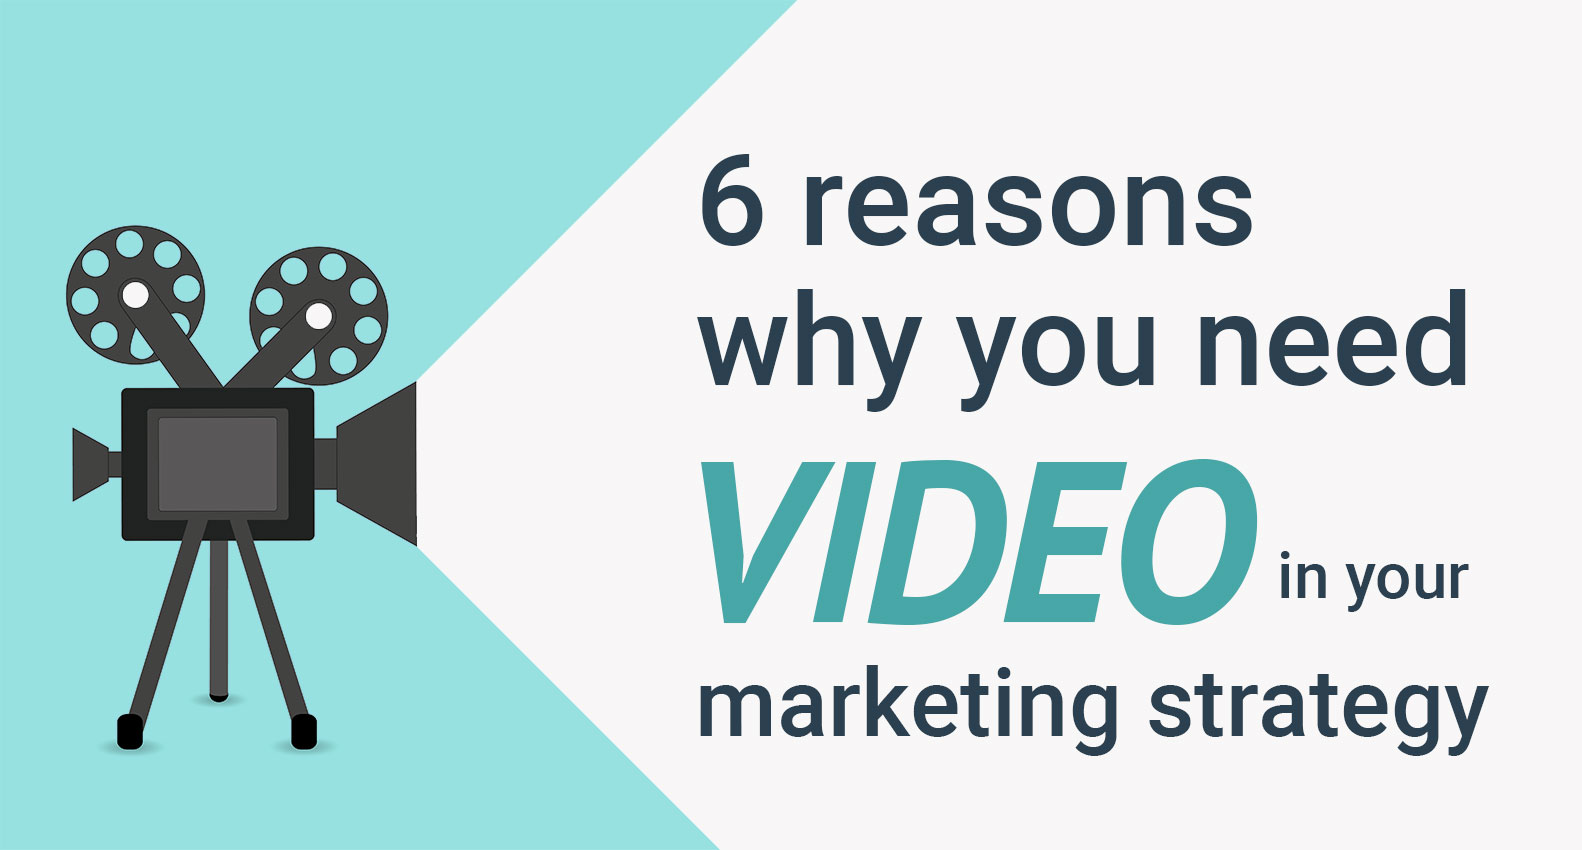 Video for Marketing Strategy